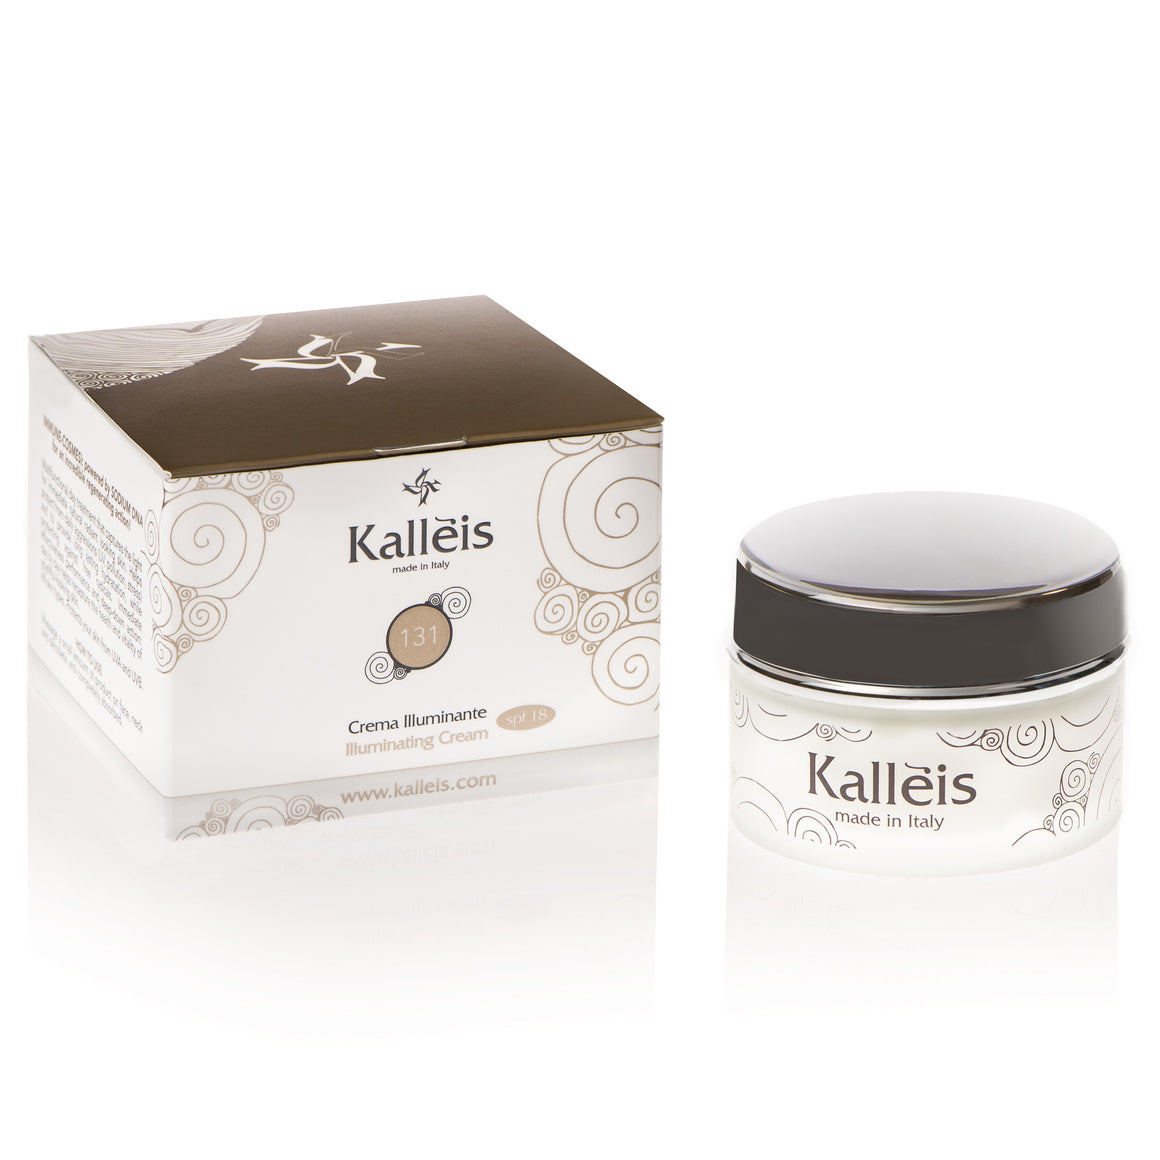 Kalléis Illuminating Day Cream, SPF 18 for a more luminous, youthful skin with enhanced tone and firmness and to tackle unwanted wrinkles, expression lines and discoloration of the skin.